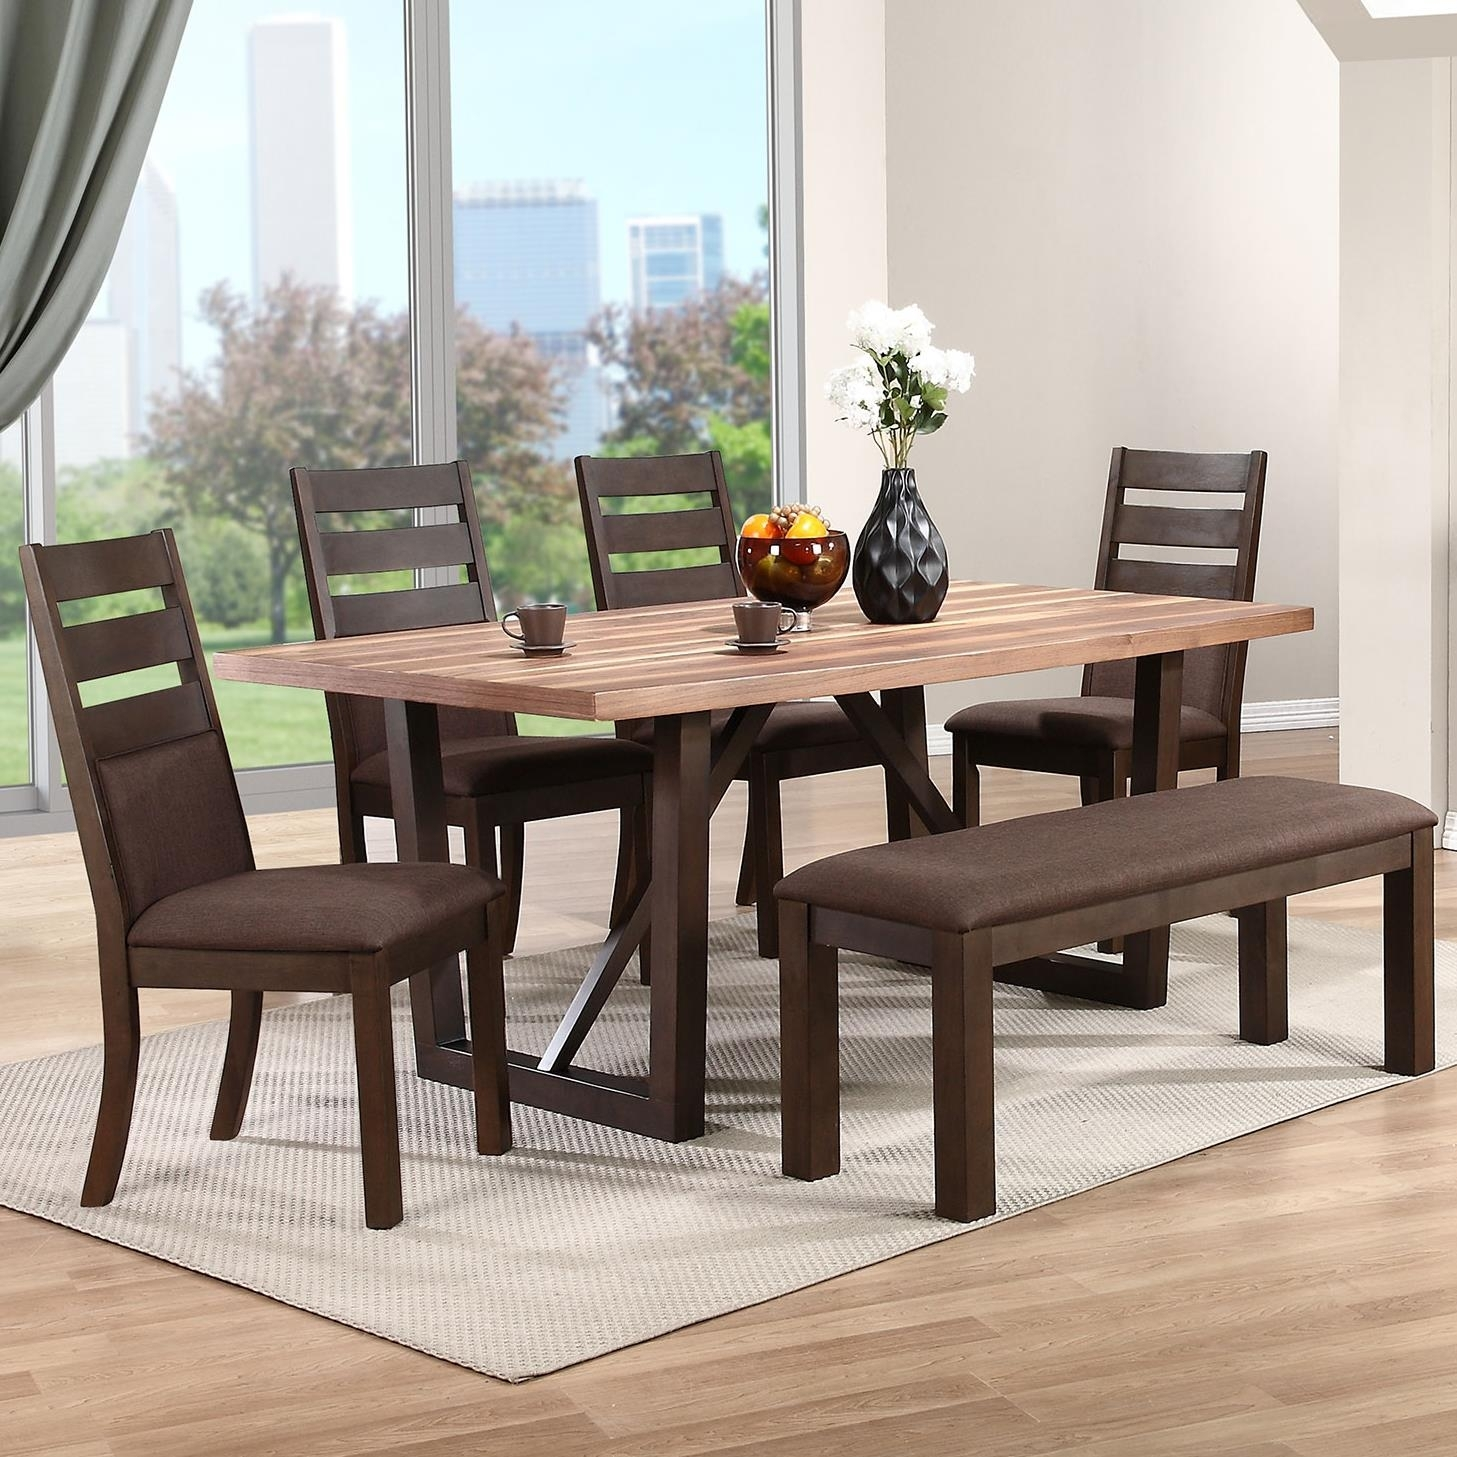 Winners Only Venice 6 Piece Dining Set With Upholstered Bench Within Current Lindy Espresso Rectangle Dining Tables (Image 20 of 20)